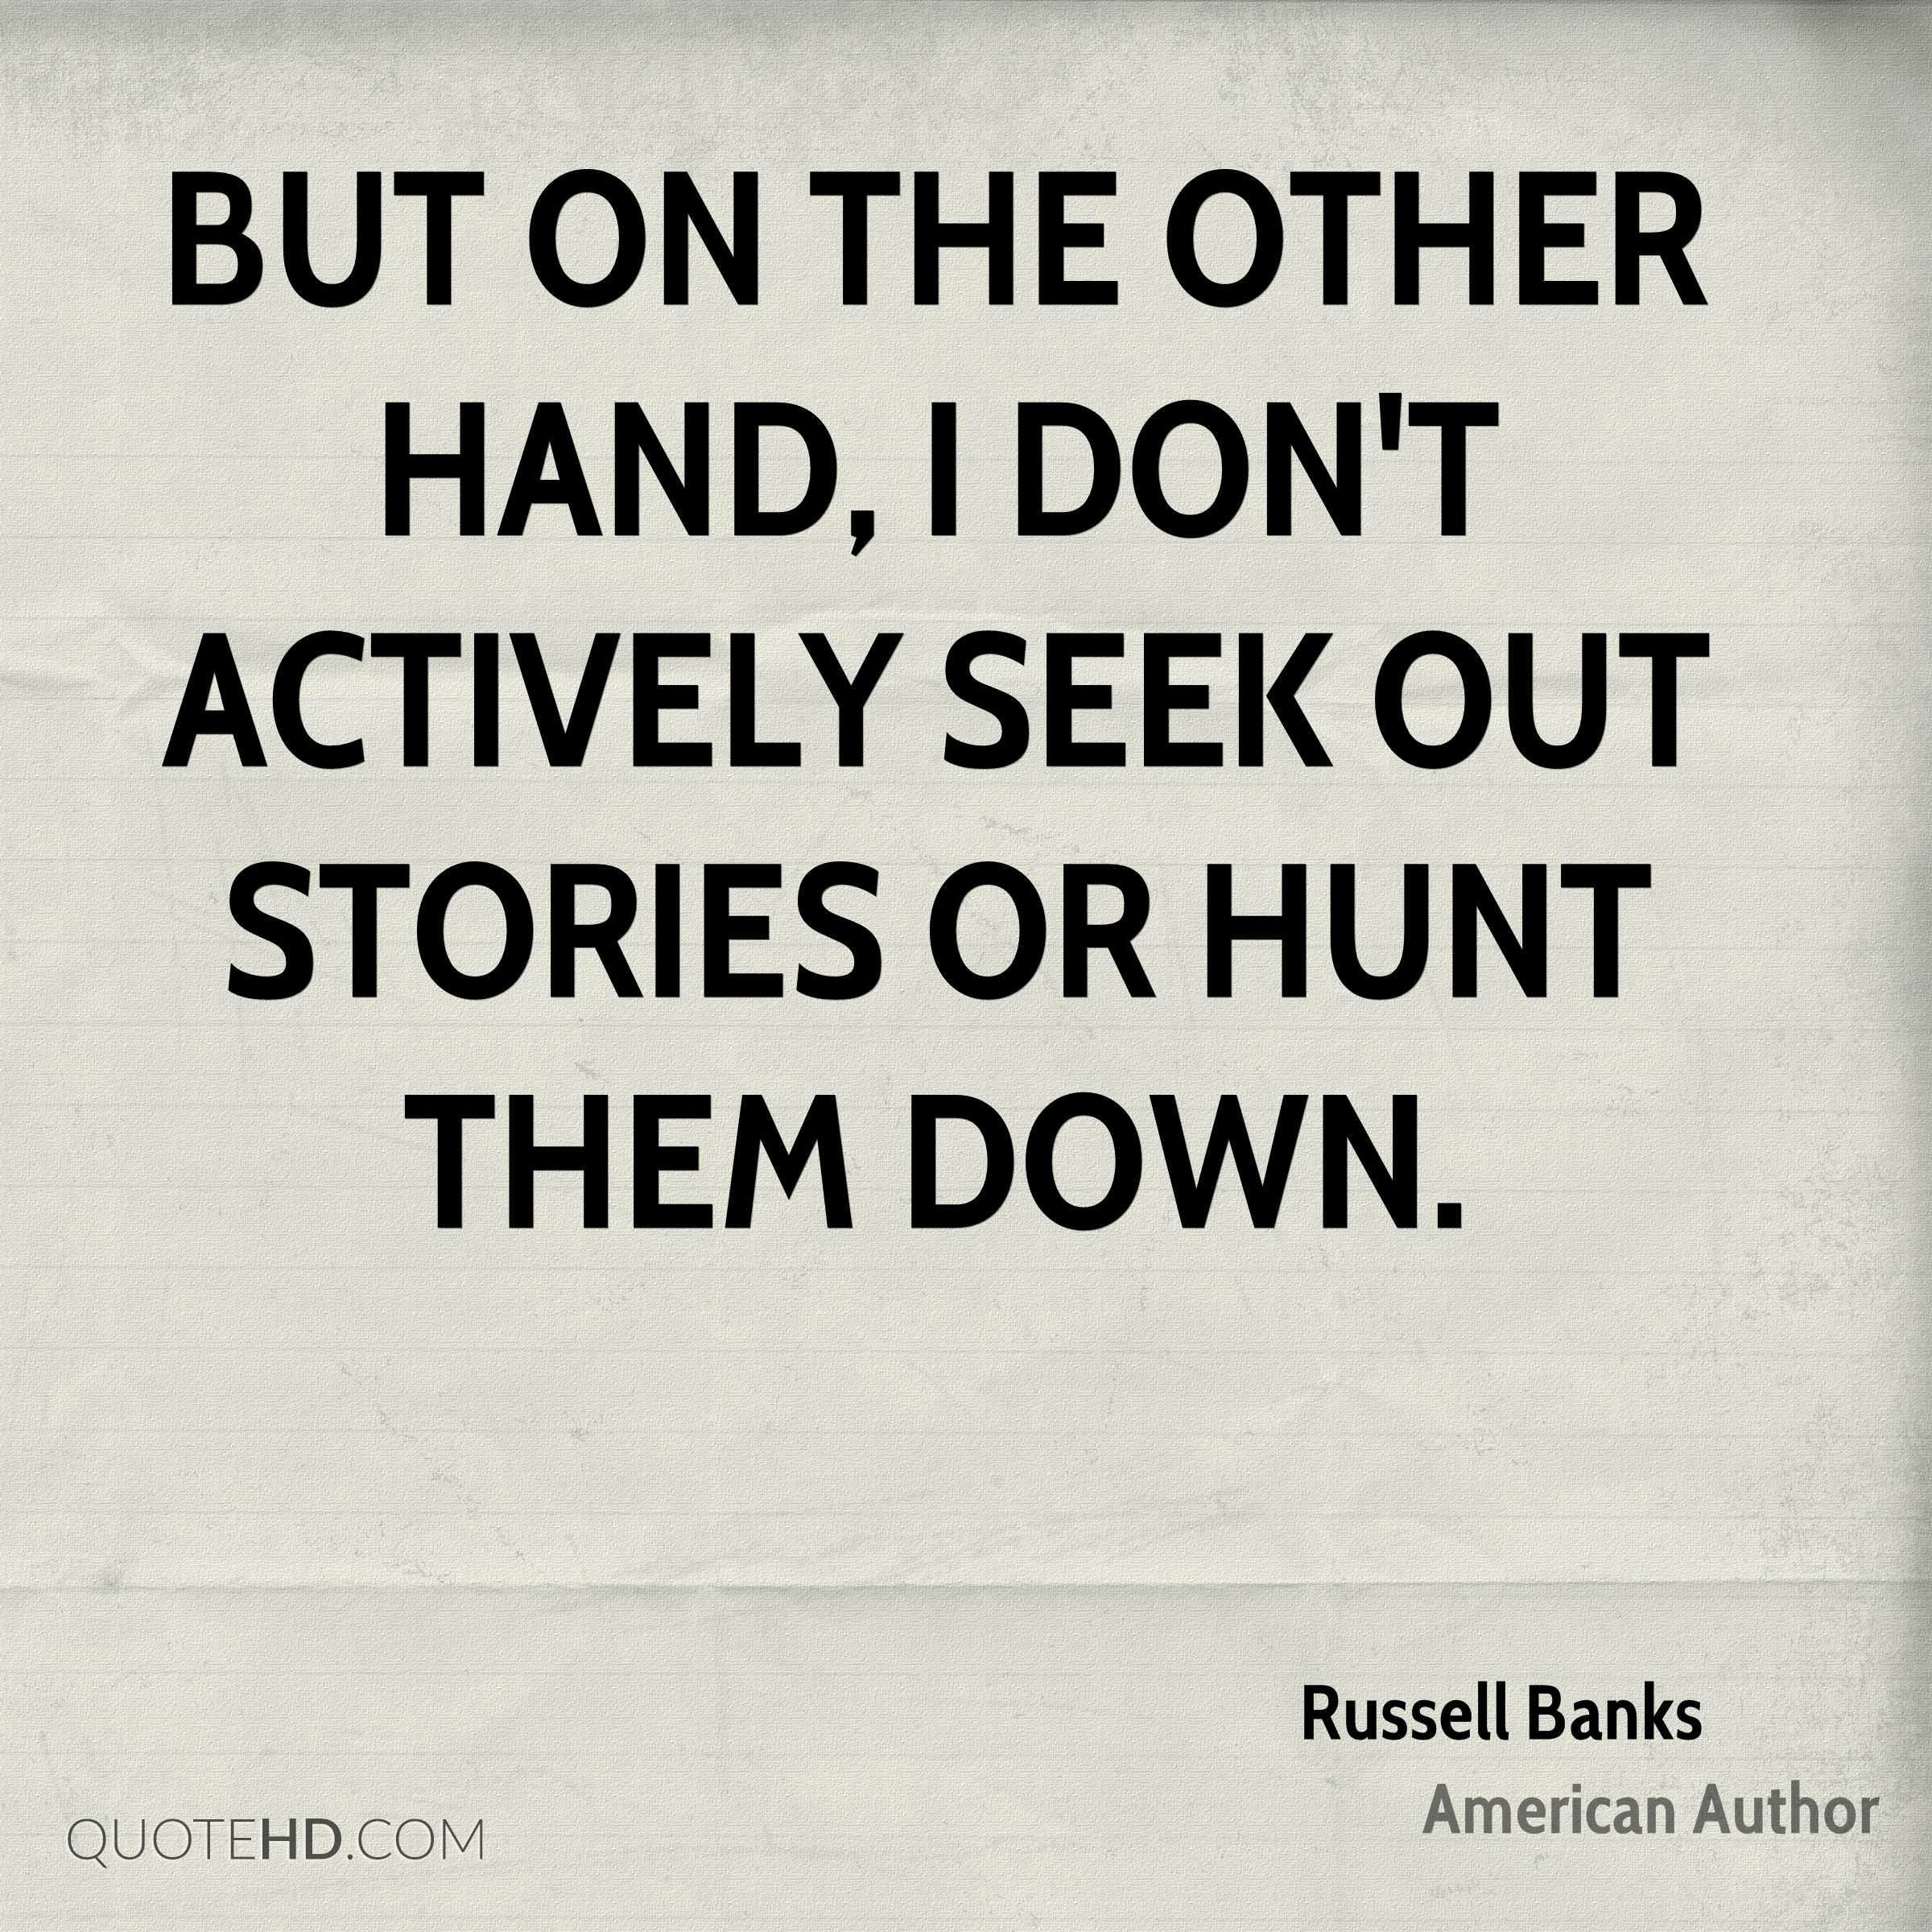 But on the other hand, I don't actively seek out stories or hunt them down.